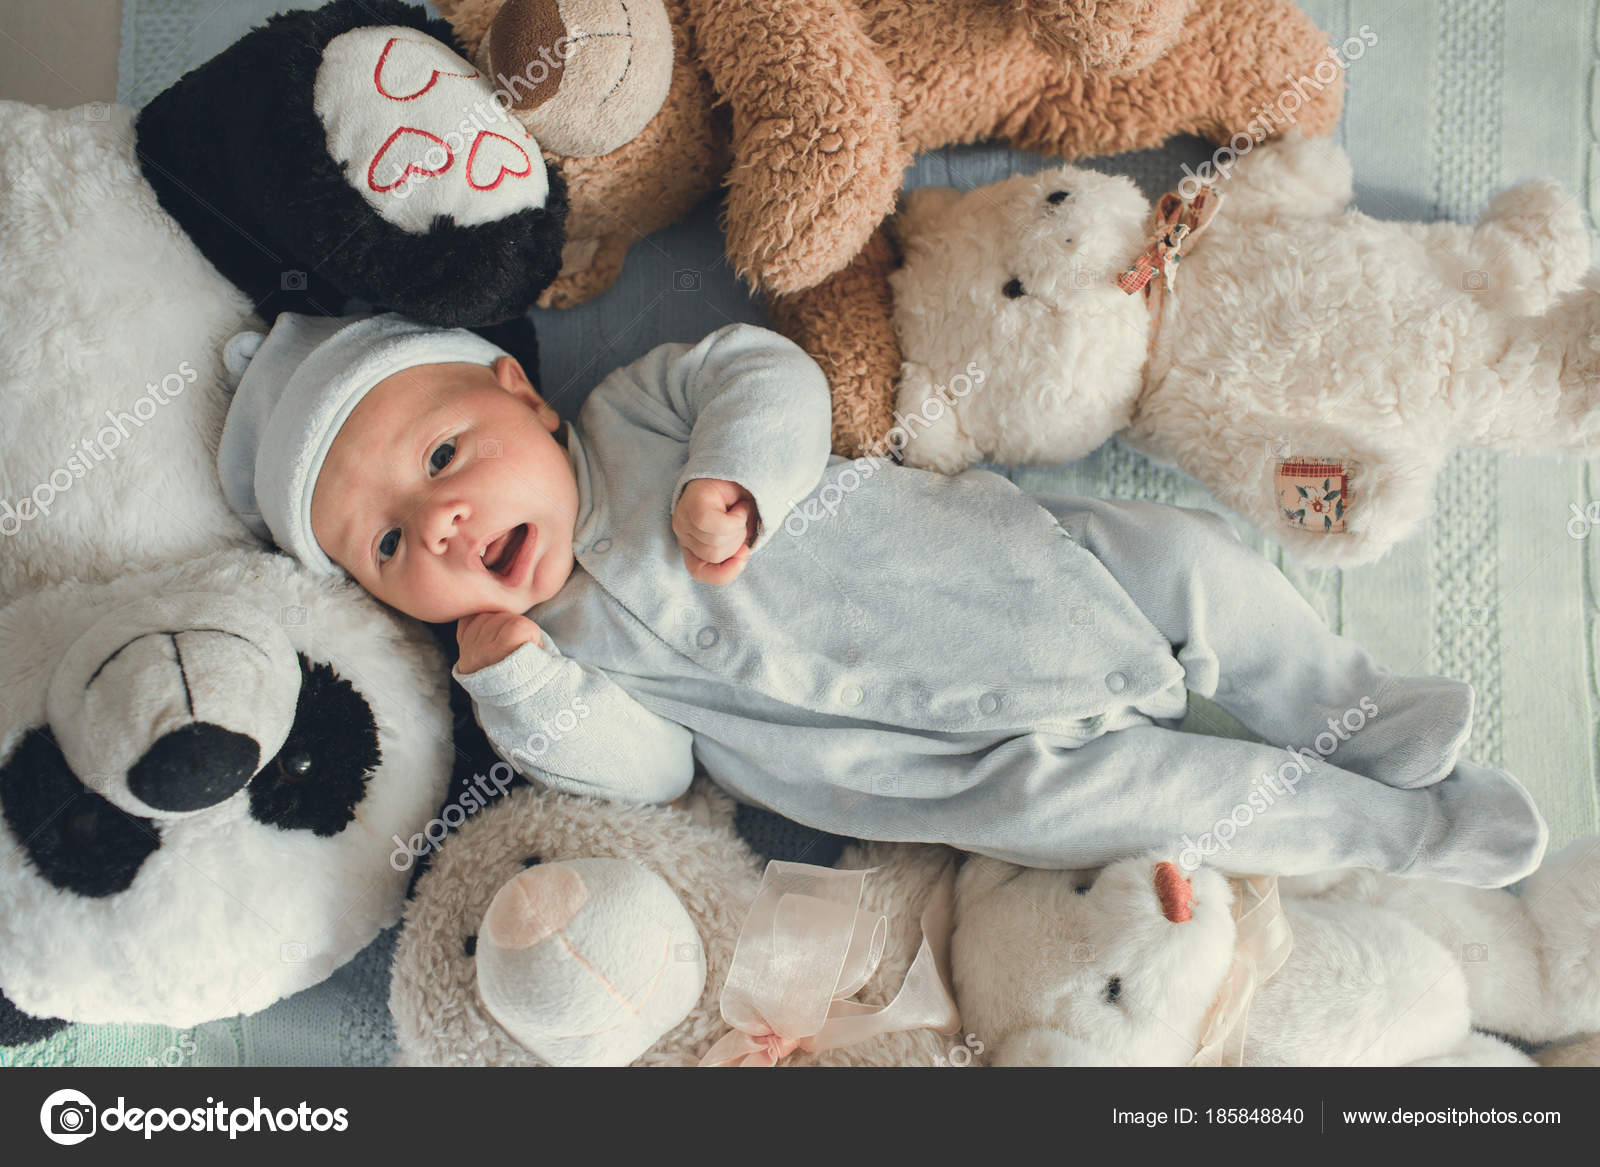 Baby Newborn Teddy Newborn Baby Laying With Five Teddy Bears On Blanket Stock